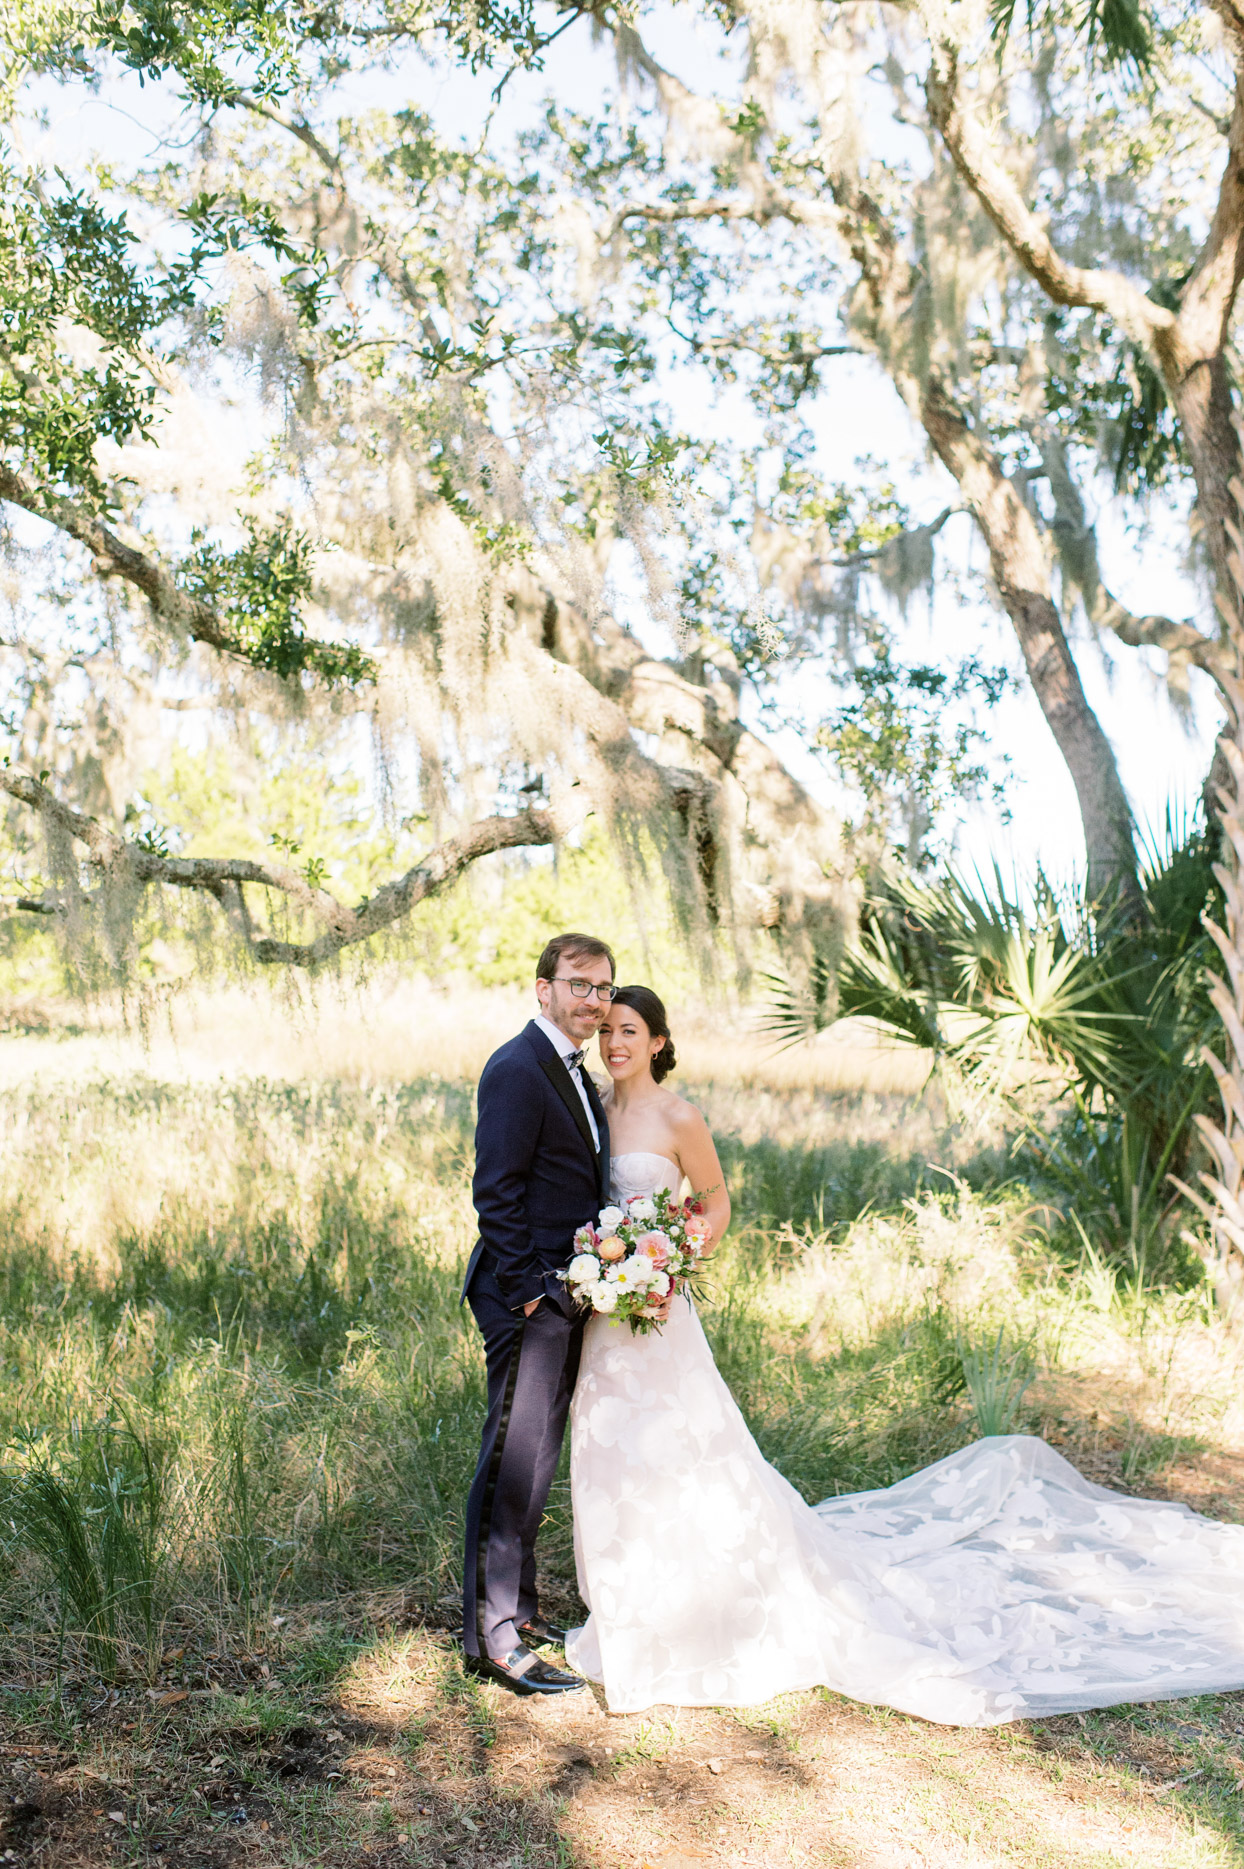 wedding couple portrait with grassy backdrop